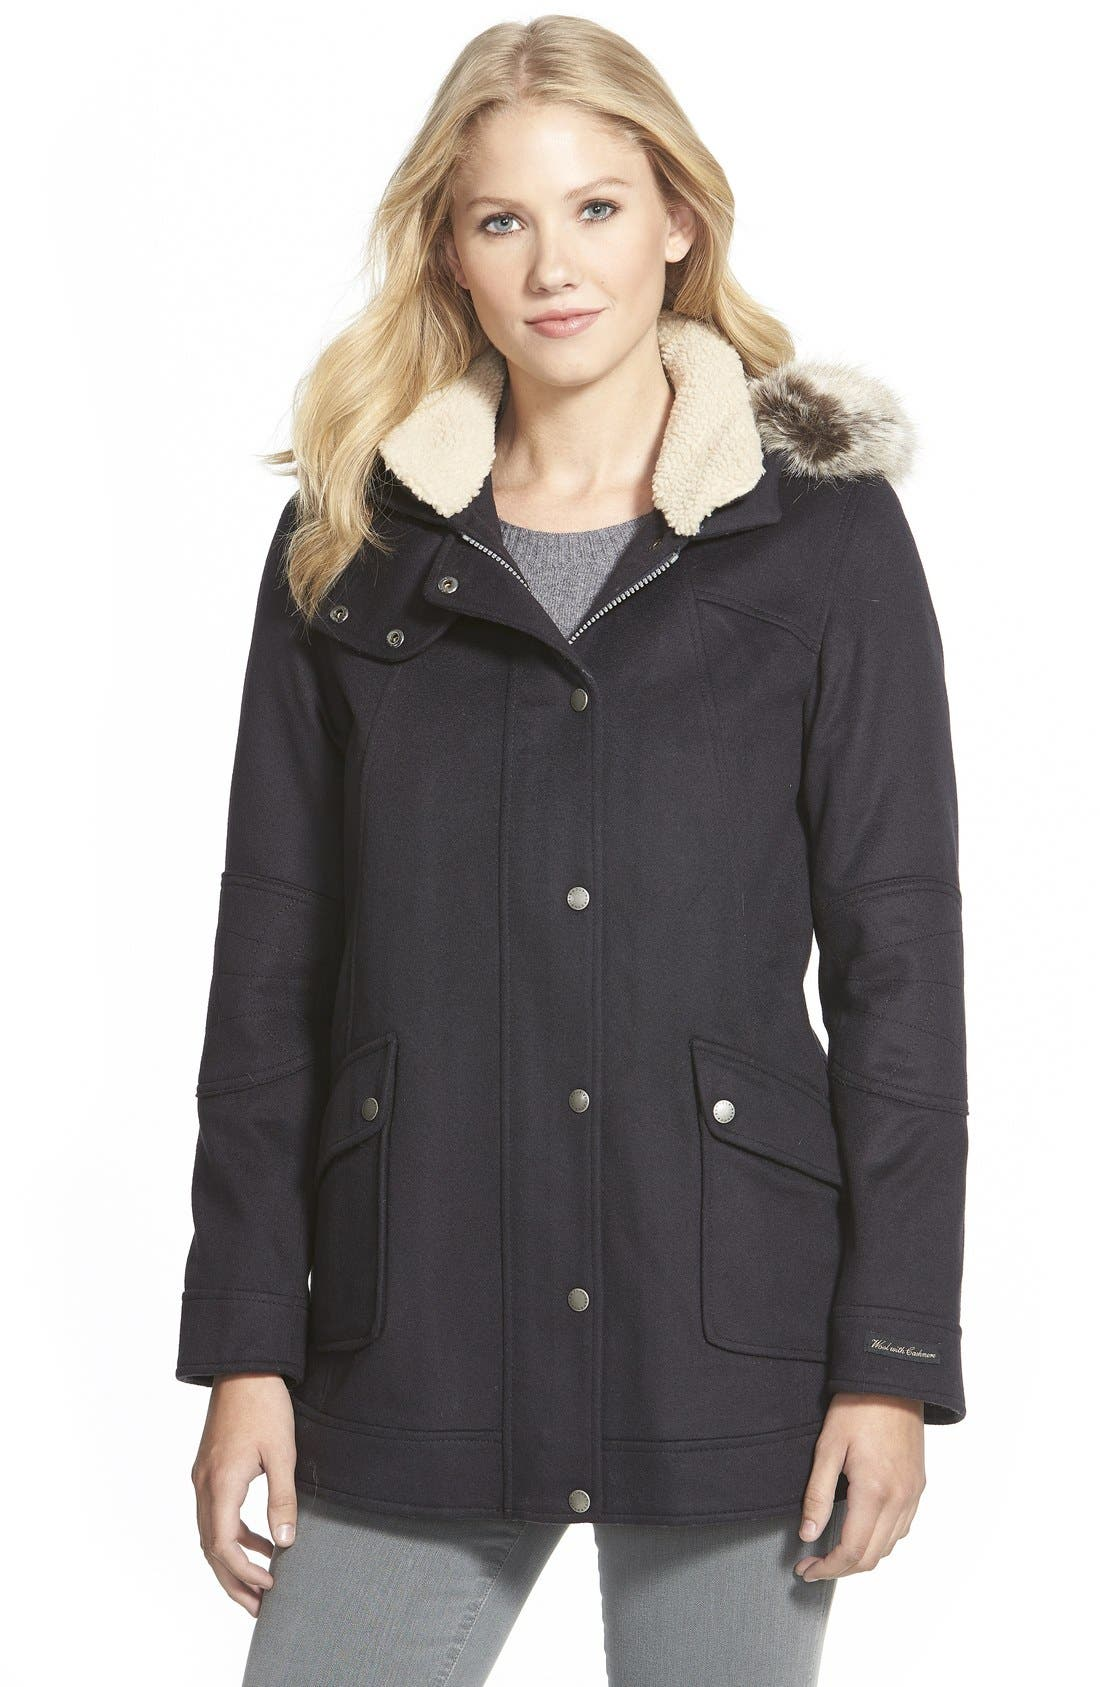 Main Image - Barbour 'Carston' Faux Fur Trim Hooded Wool Blend Jacket